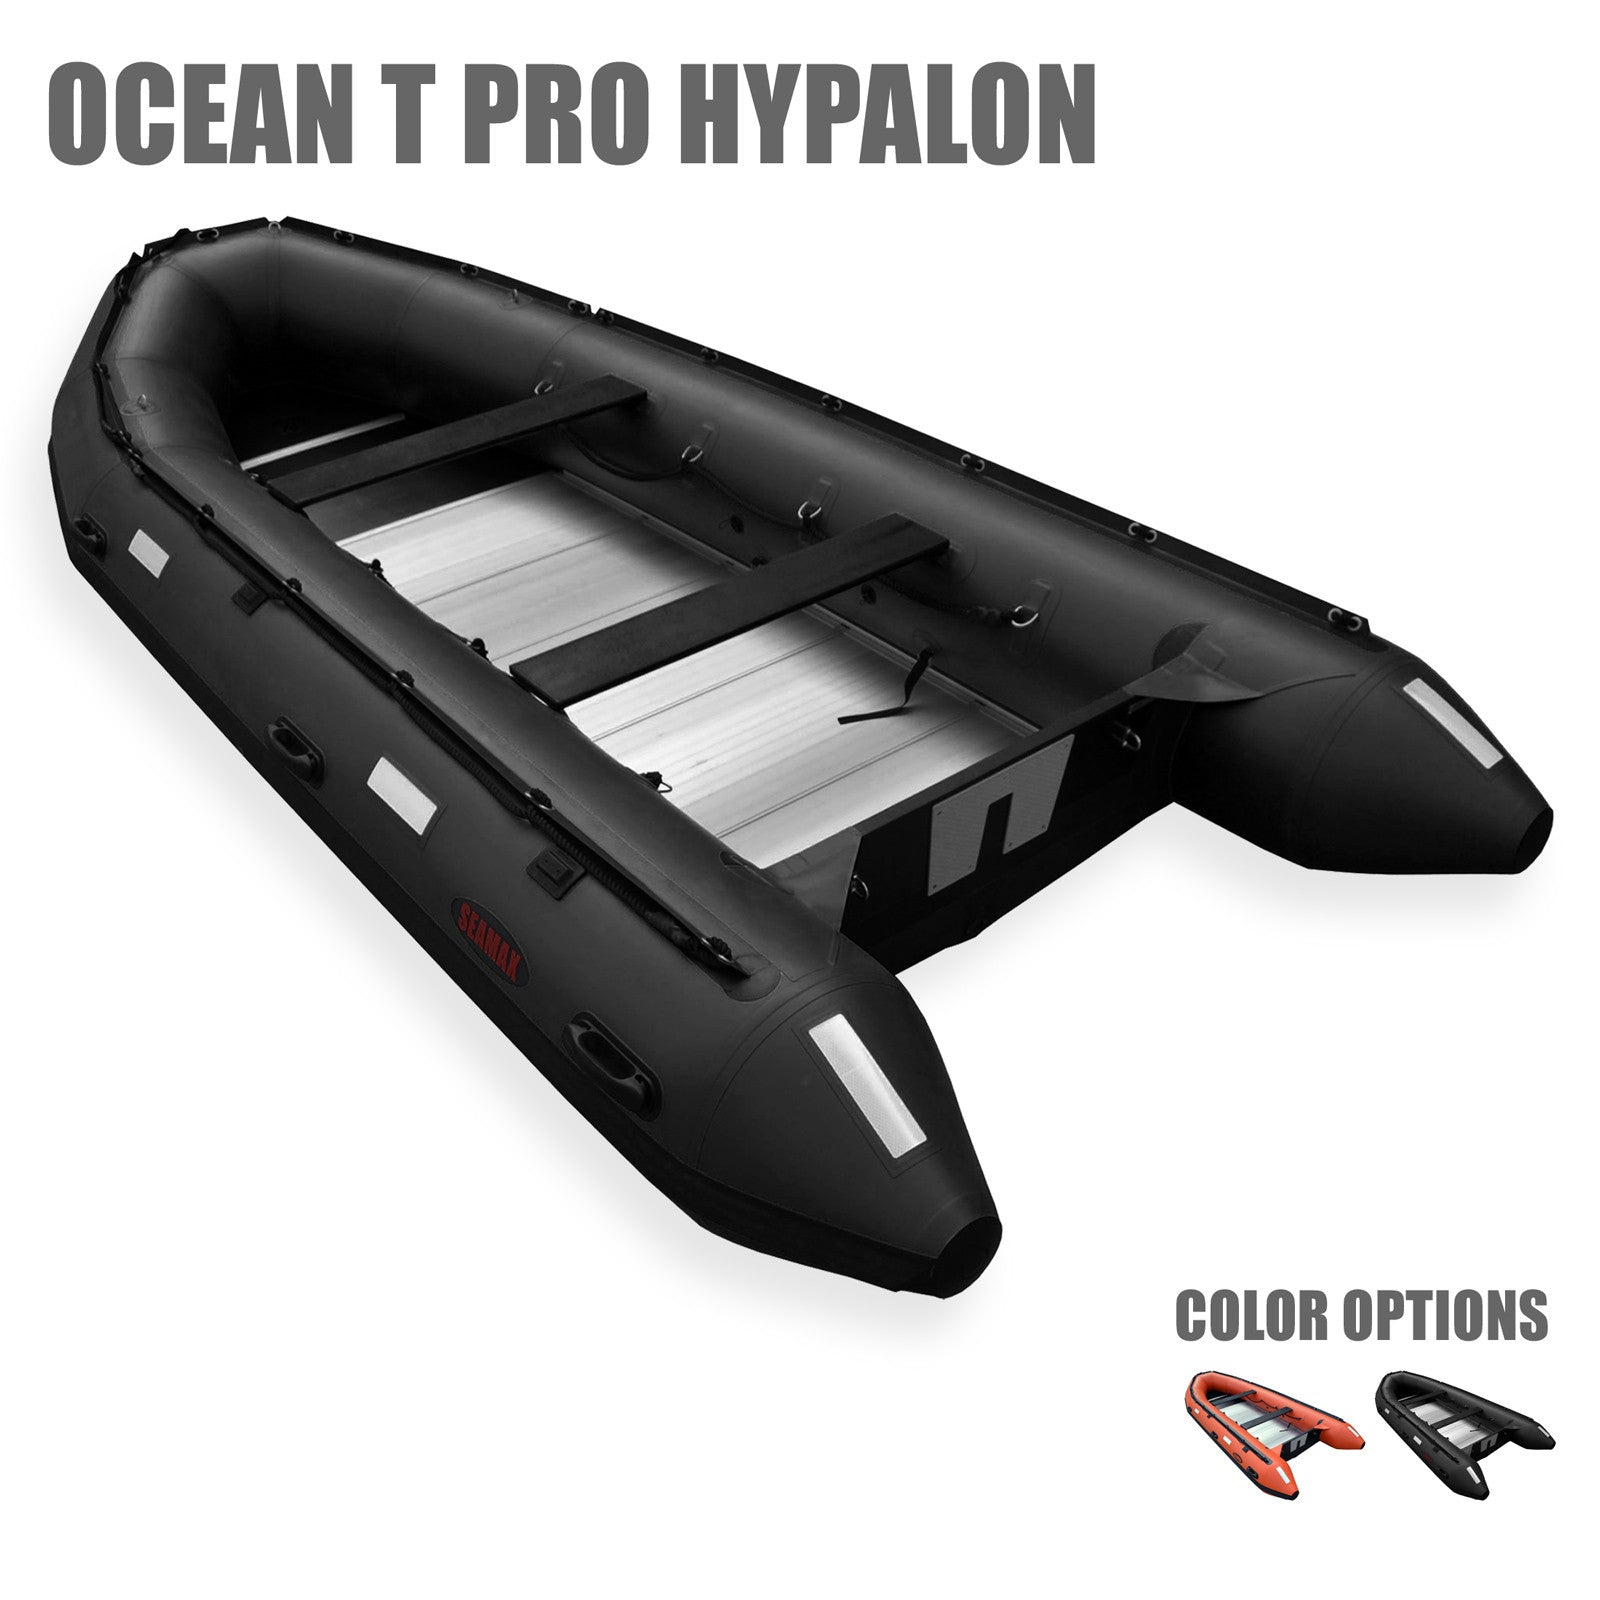 Seamax Pro OceanT Hypalon Commercial Grade Inflatable Boat, with Heavy Duty  Alumium Floor (Boat Only)